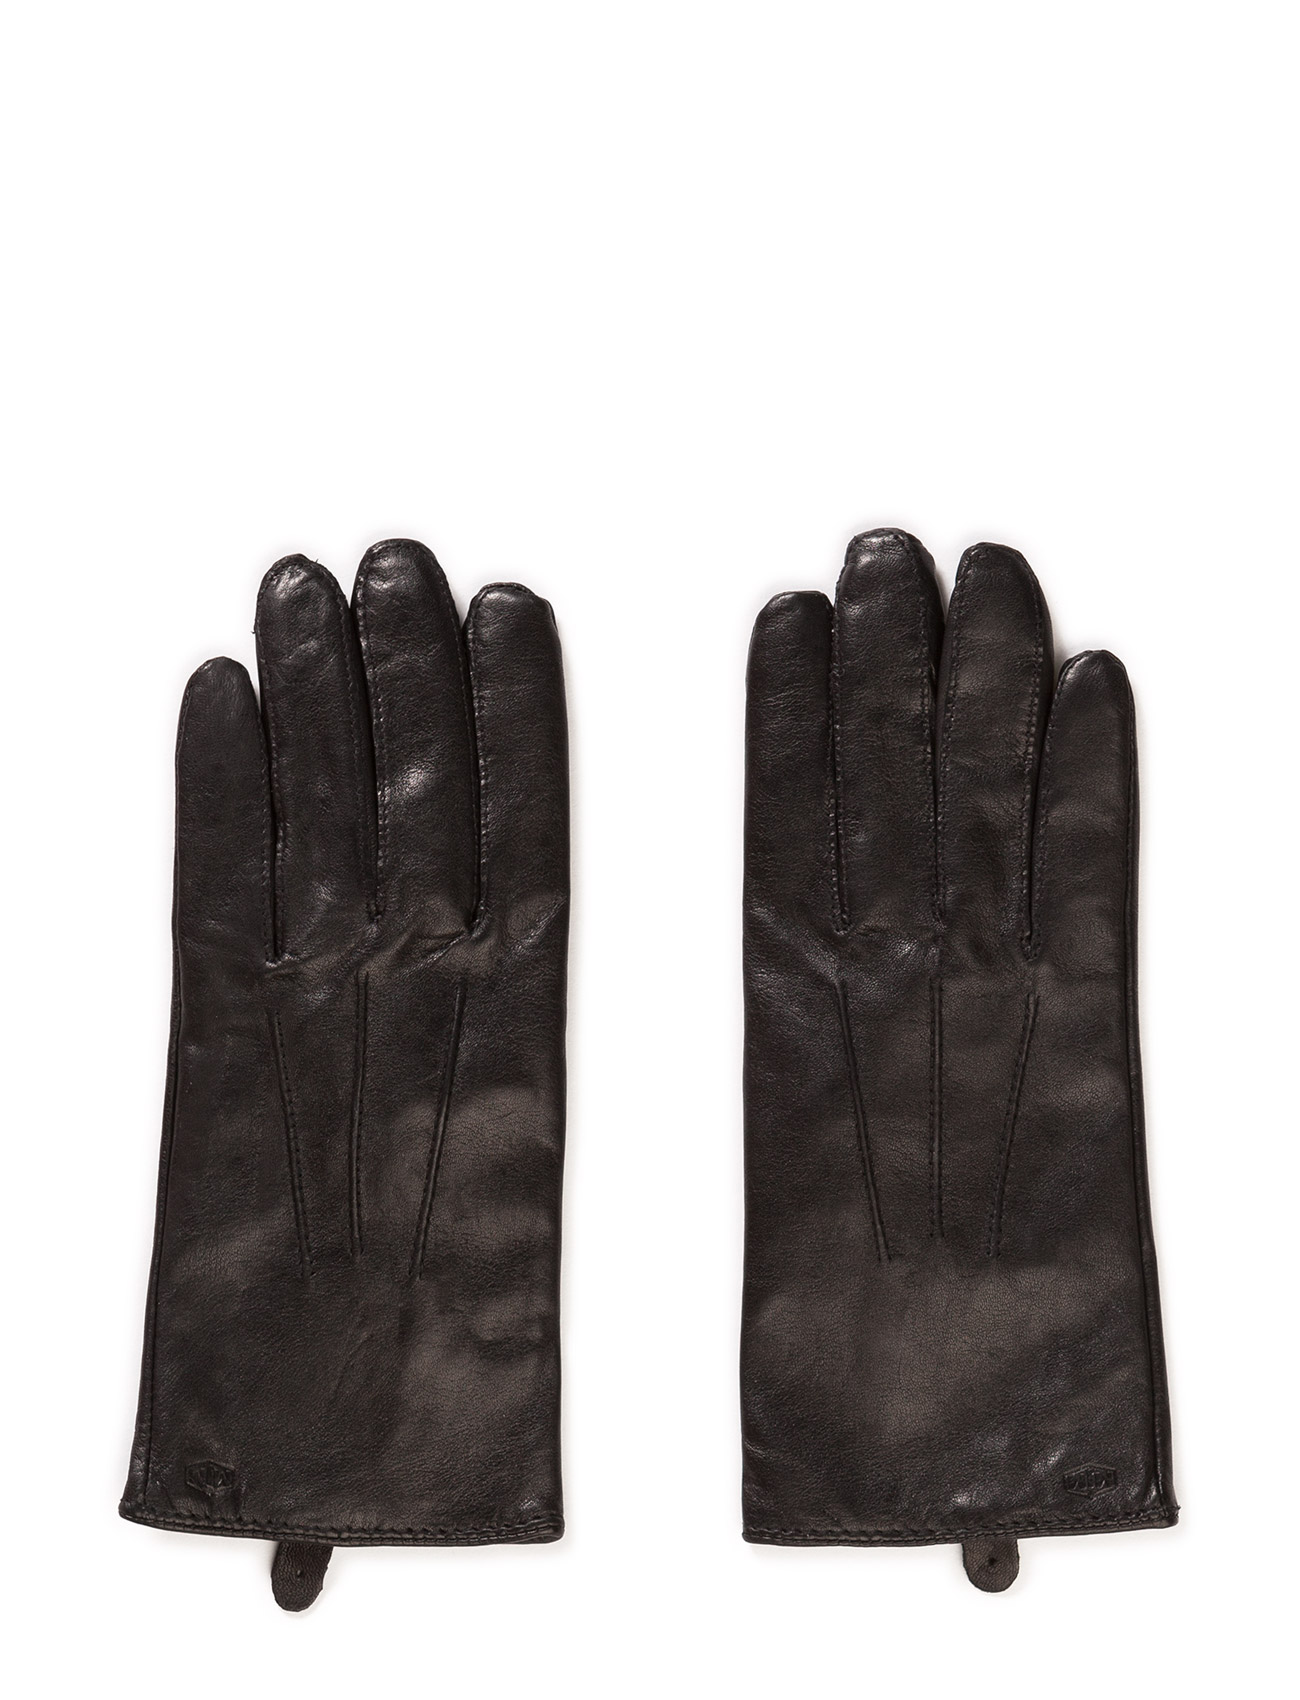 Mjm Glove Angelina W Leather Black MJM Handsker til Damer i